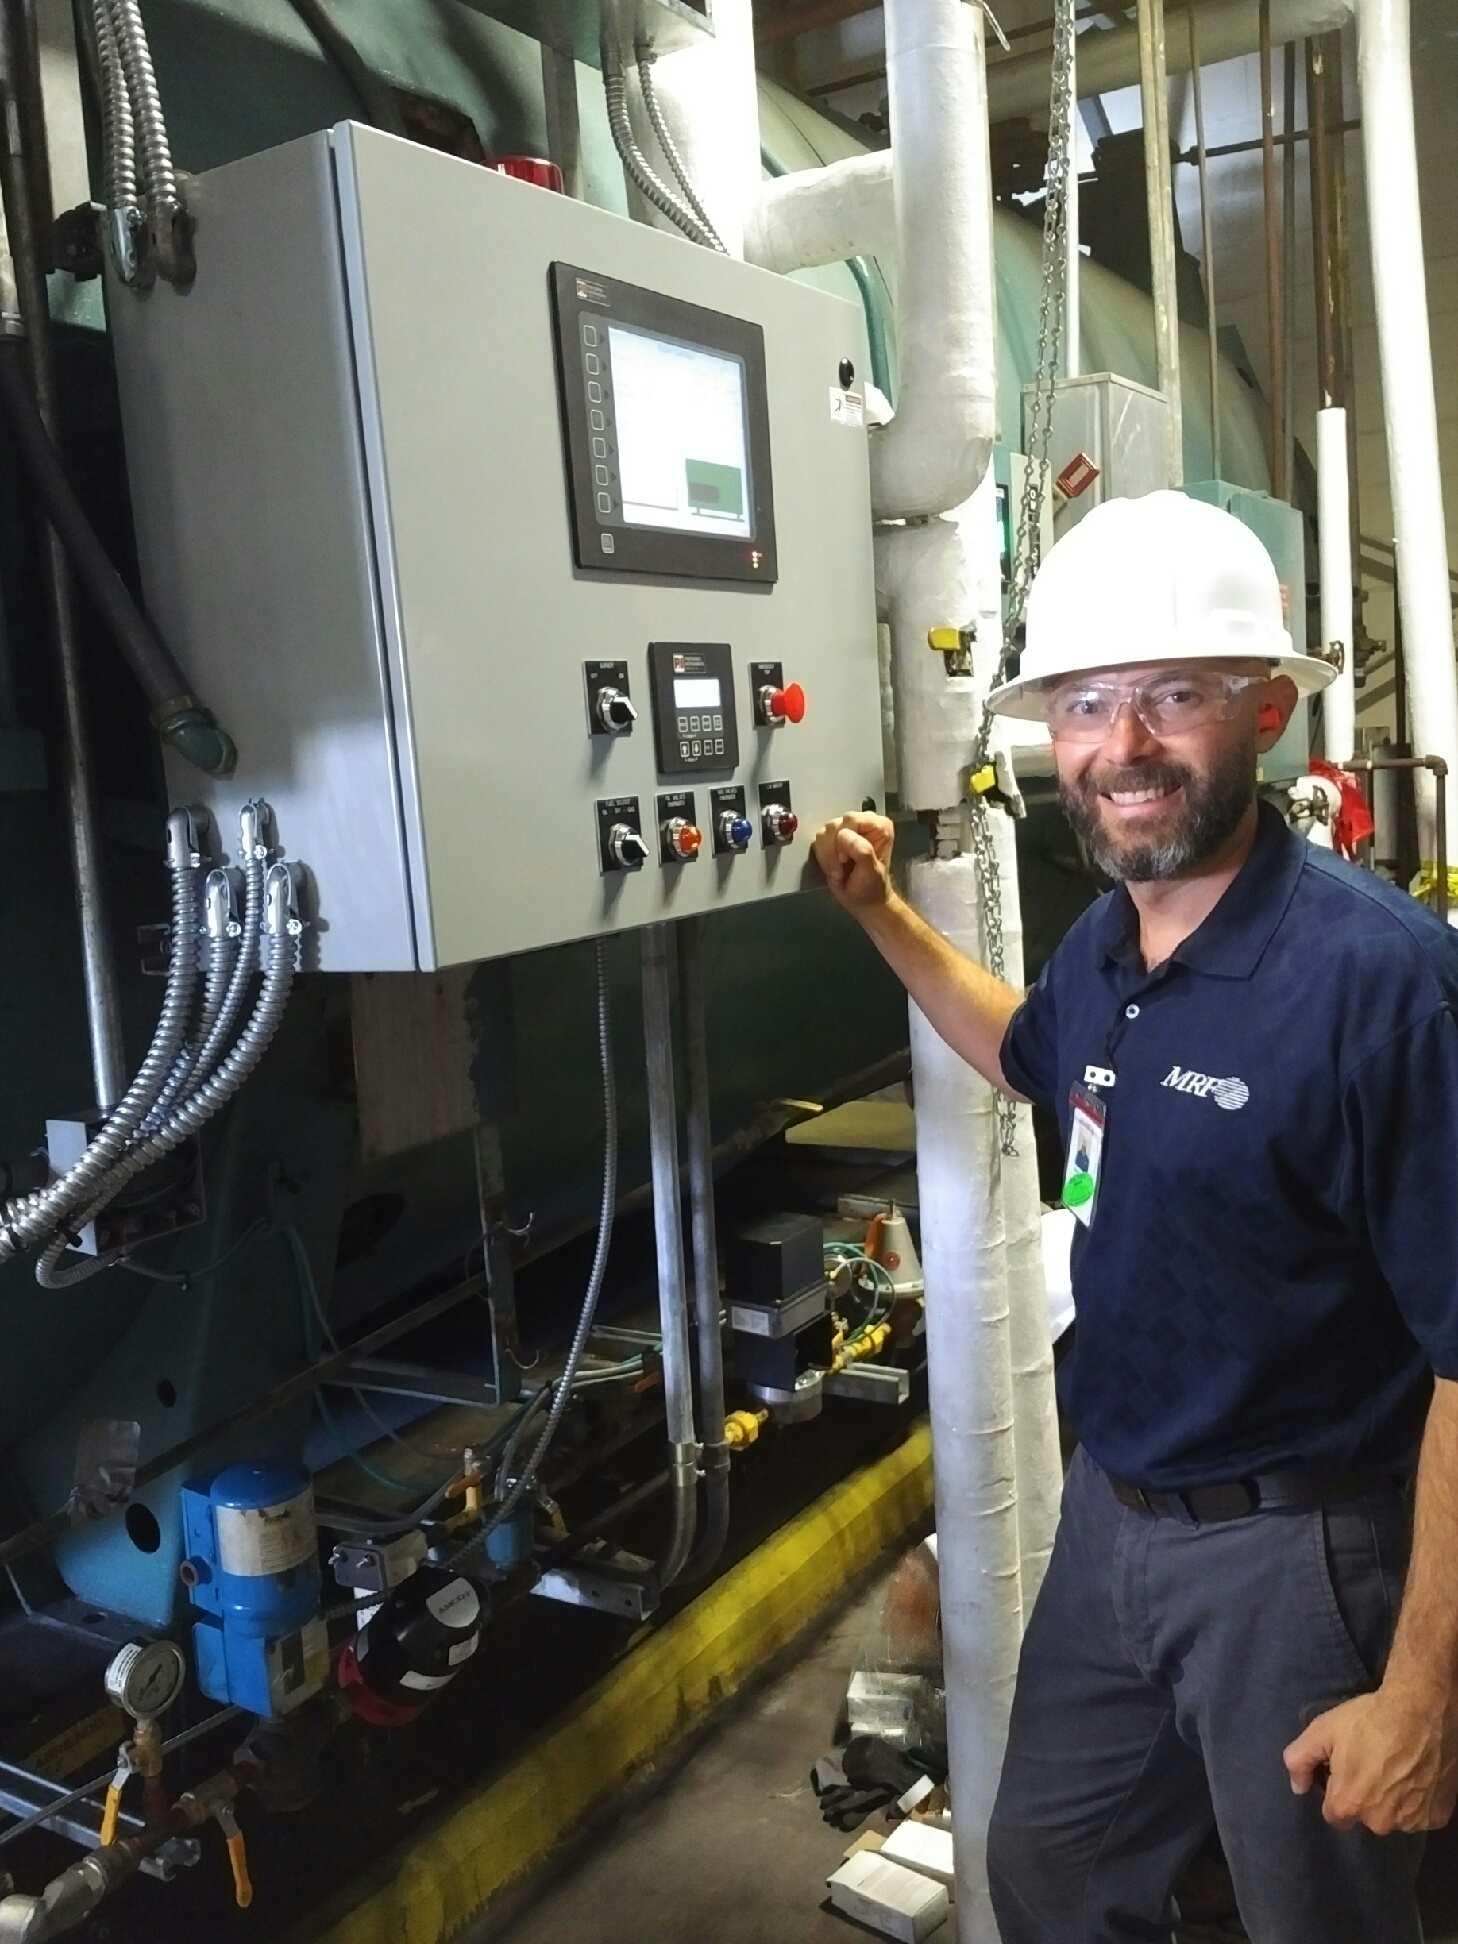 Preferred Utilities Performs Energy Retrofit on Pharmaceutical Boiler in Puerto Rico